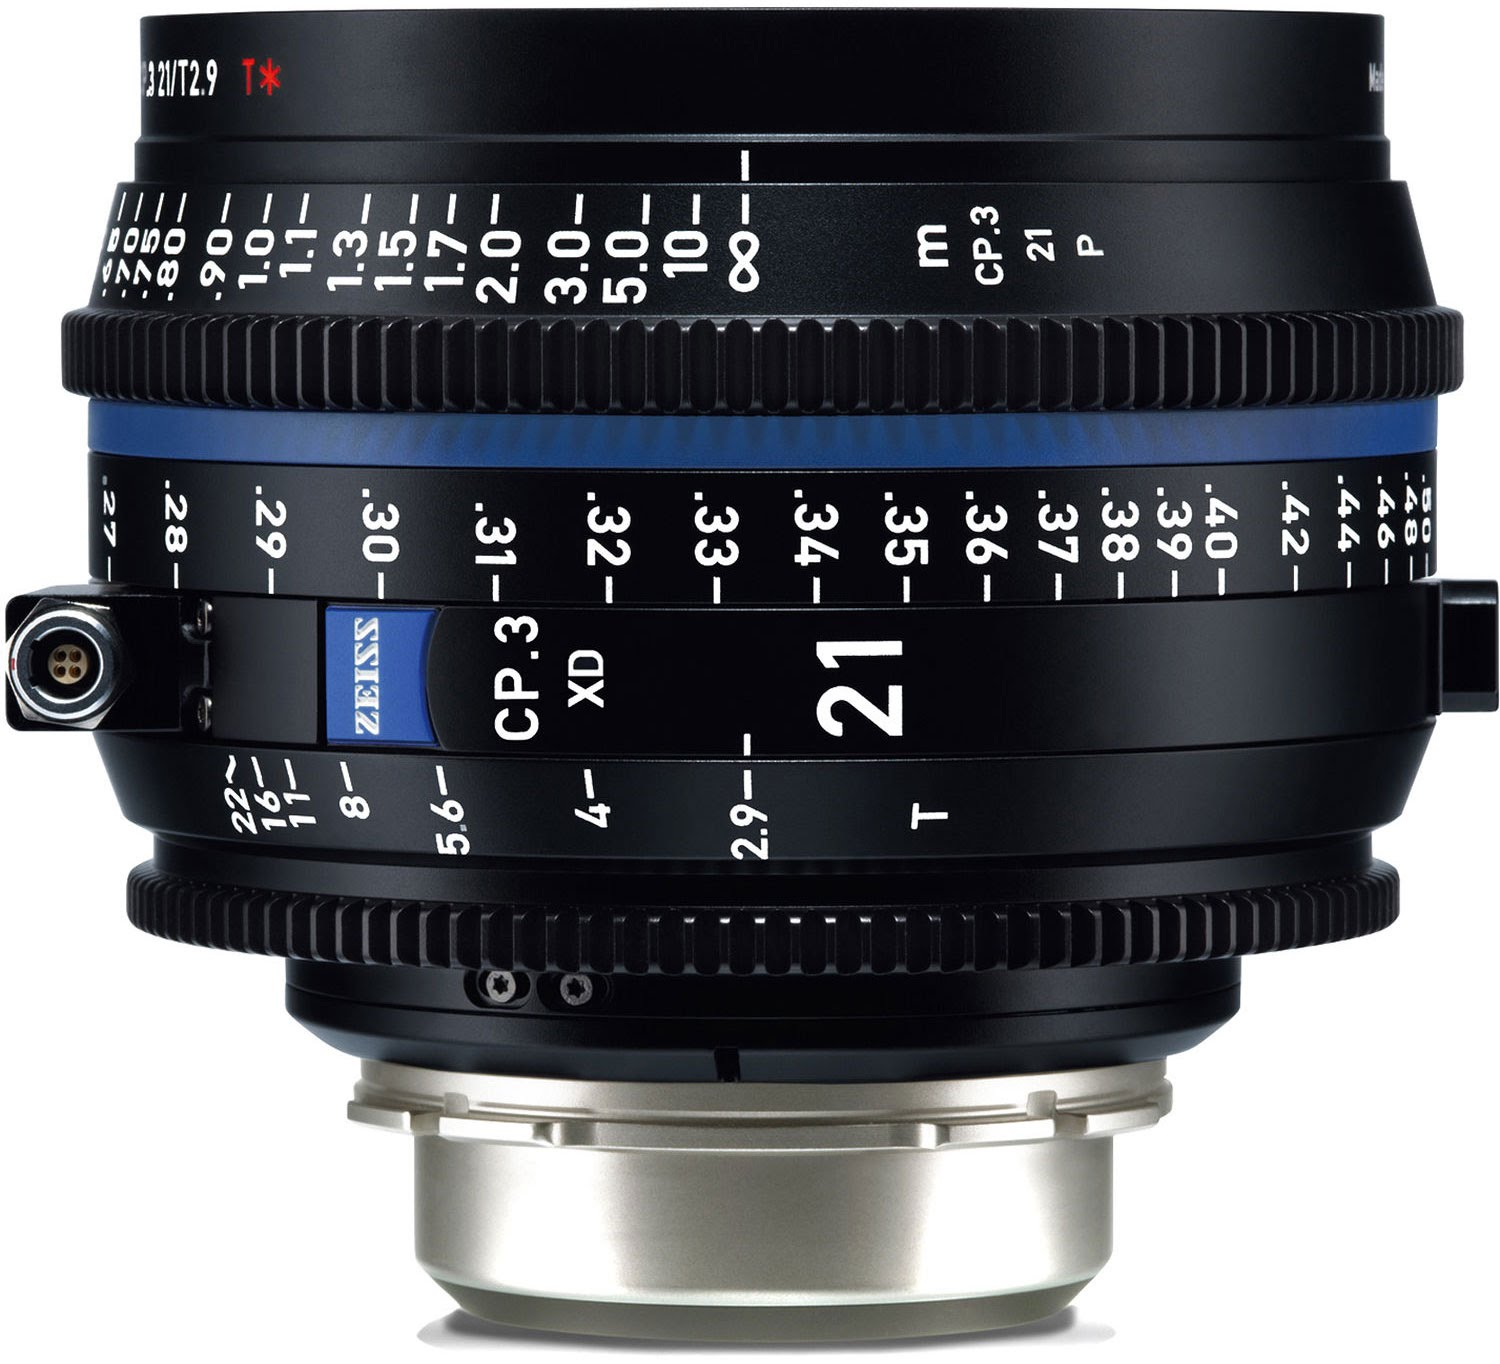 ZEISS CP.3 XD 21mm T2.9 Compact Prime Lens